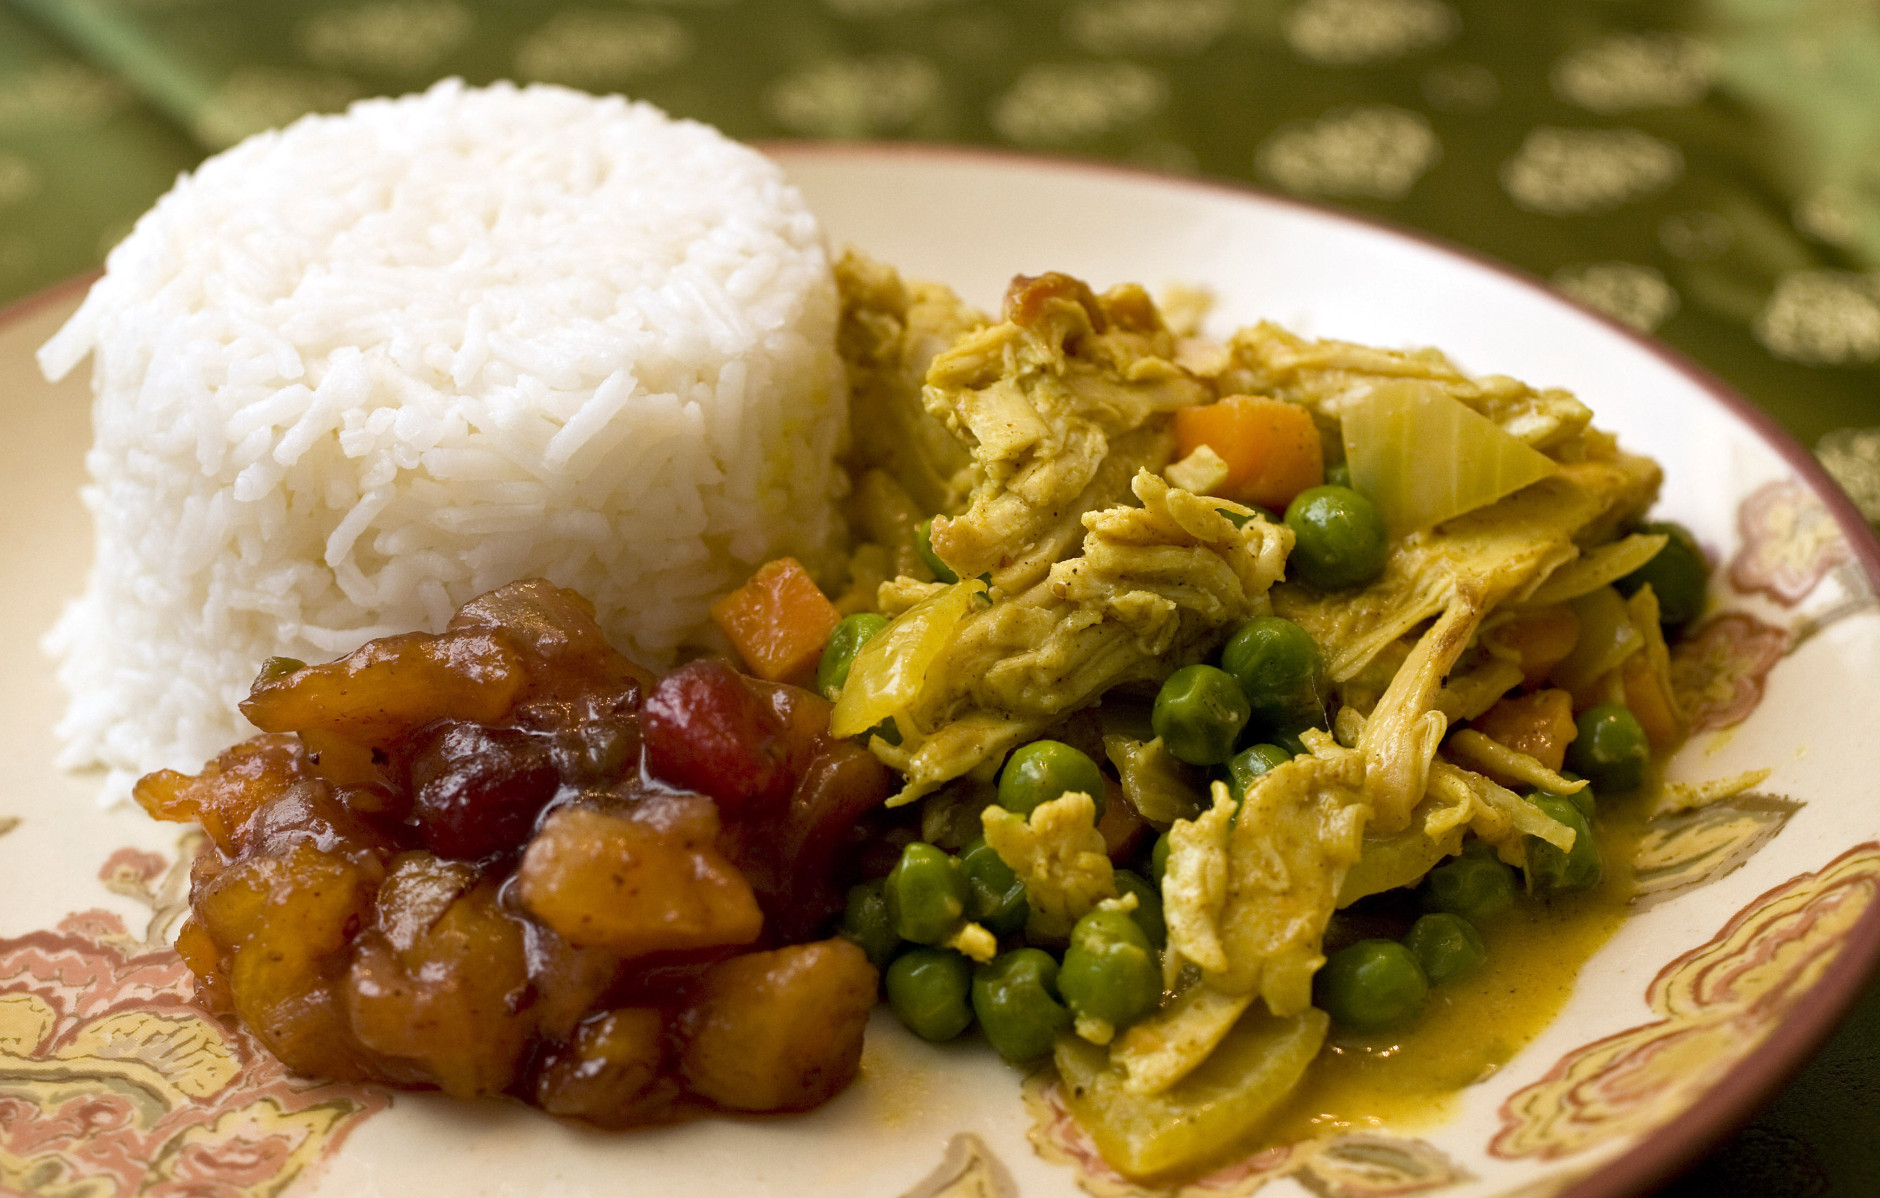 **FOR USE WITH AP LIFESTYLES**   Leftover Turkey Curry with Cranberry Chutney is seen in this Wednesday, Oct. 29, 2008 photo. Take your classically American leftovers and look to India with this dish. The turkey recipe can also be made as a soup that is perfect for cold fall days. (AP Photo/Larry Crowe)